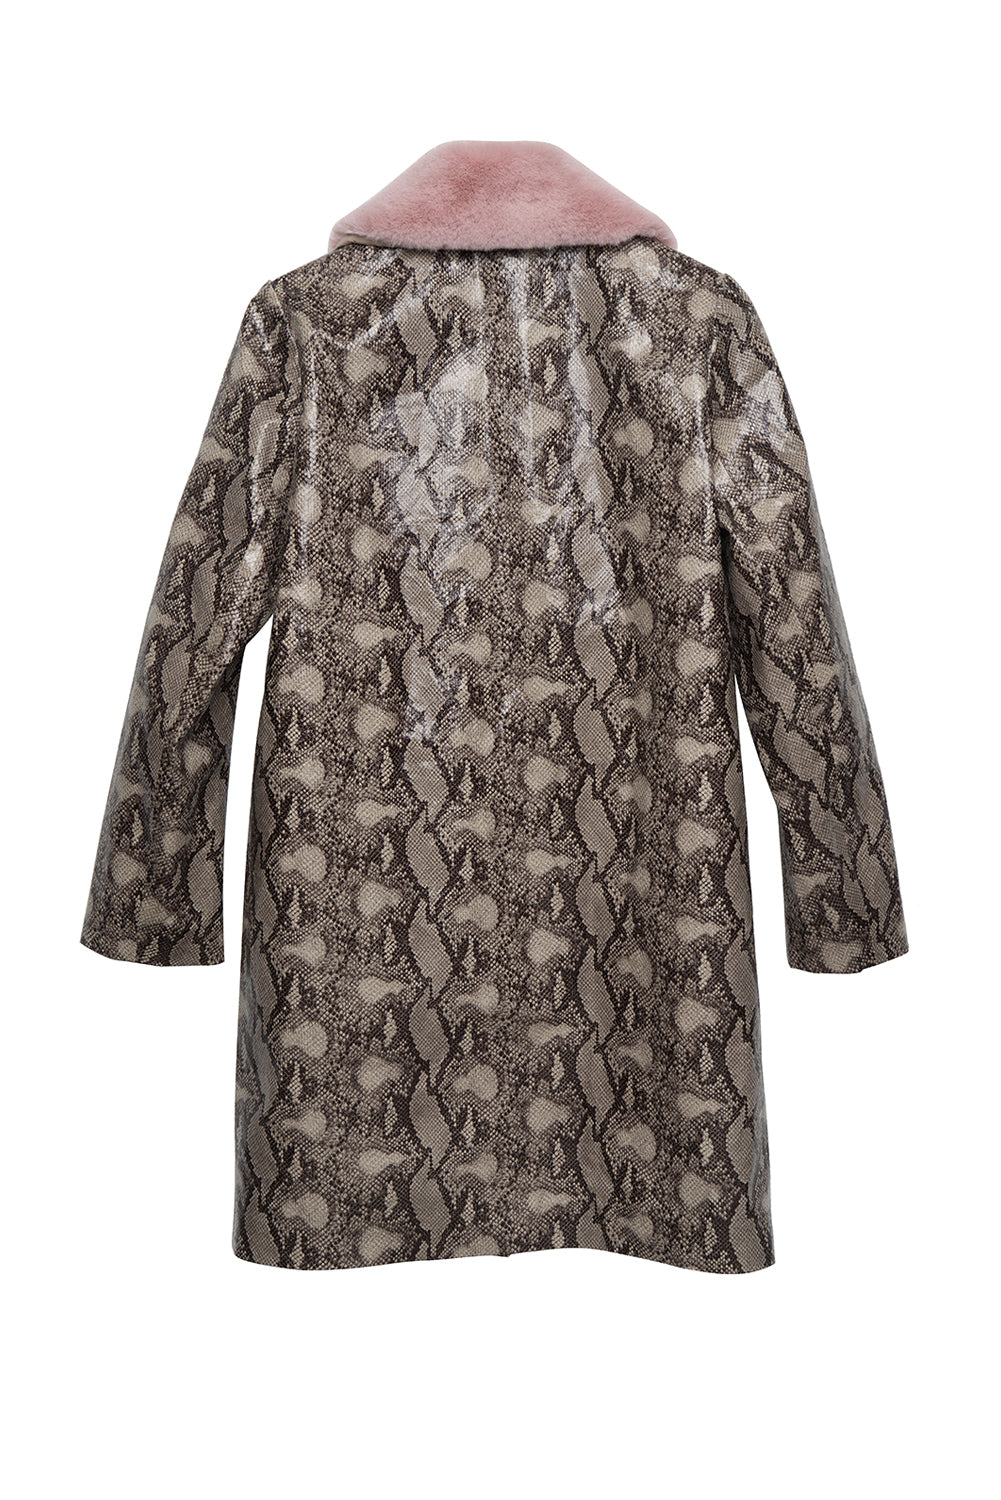 Detachable Faux Fur Collar Snakeskin Print Faux Leather Coat - front row shop